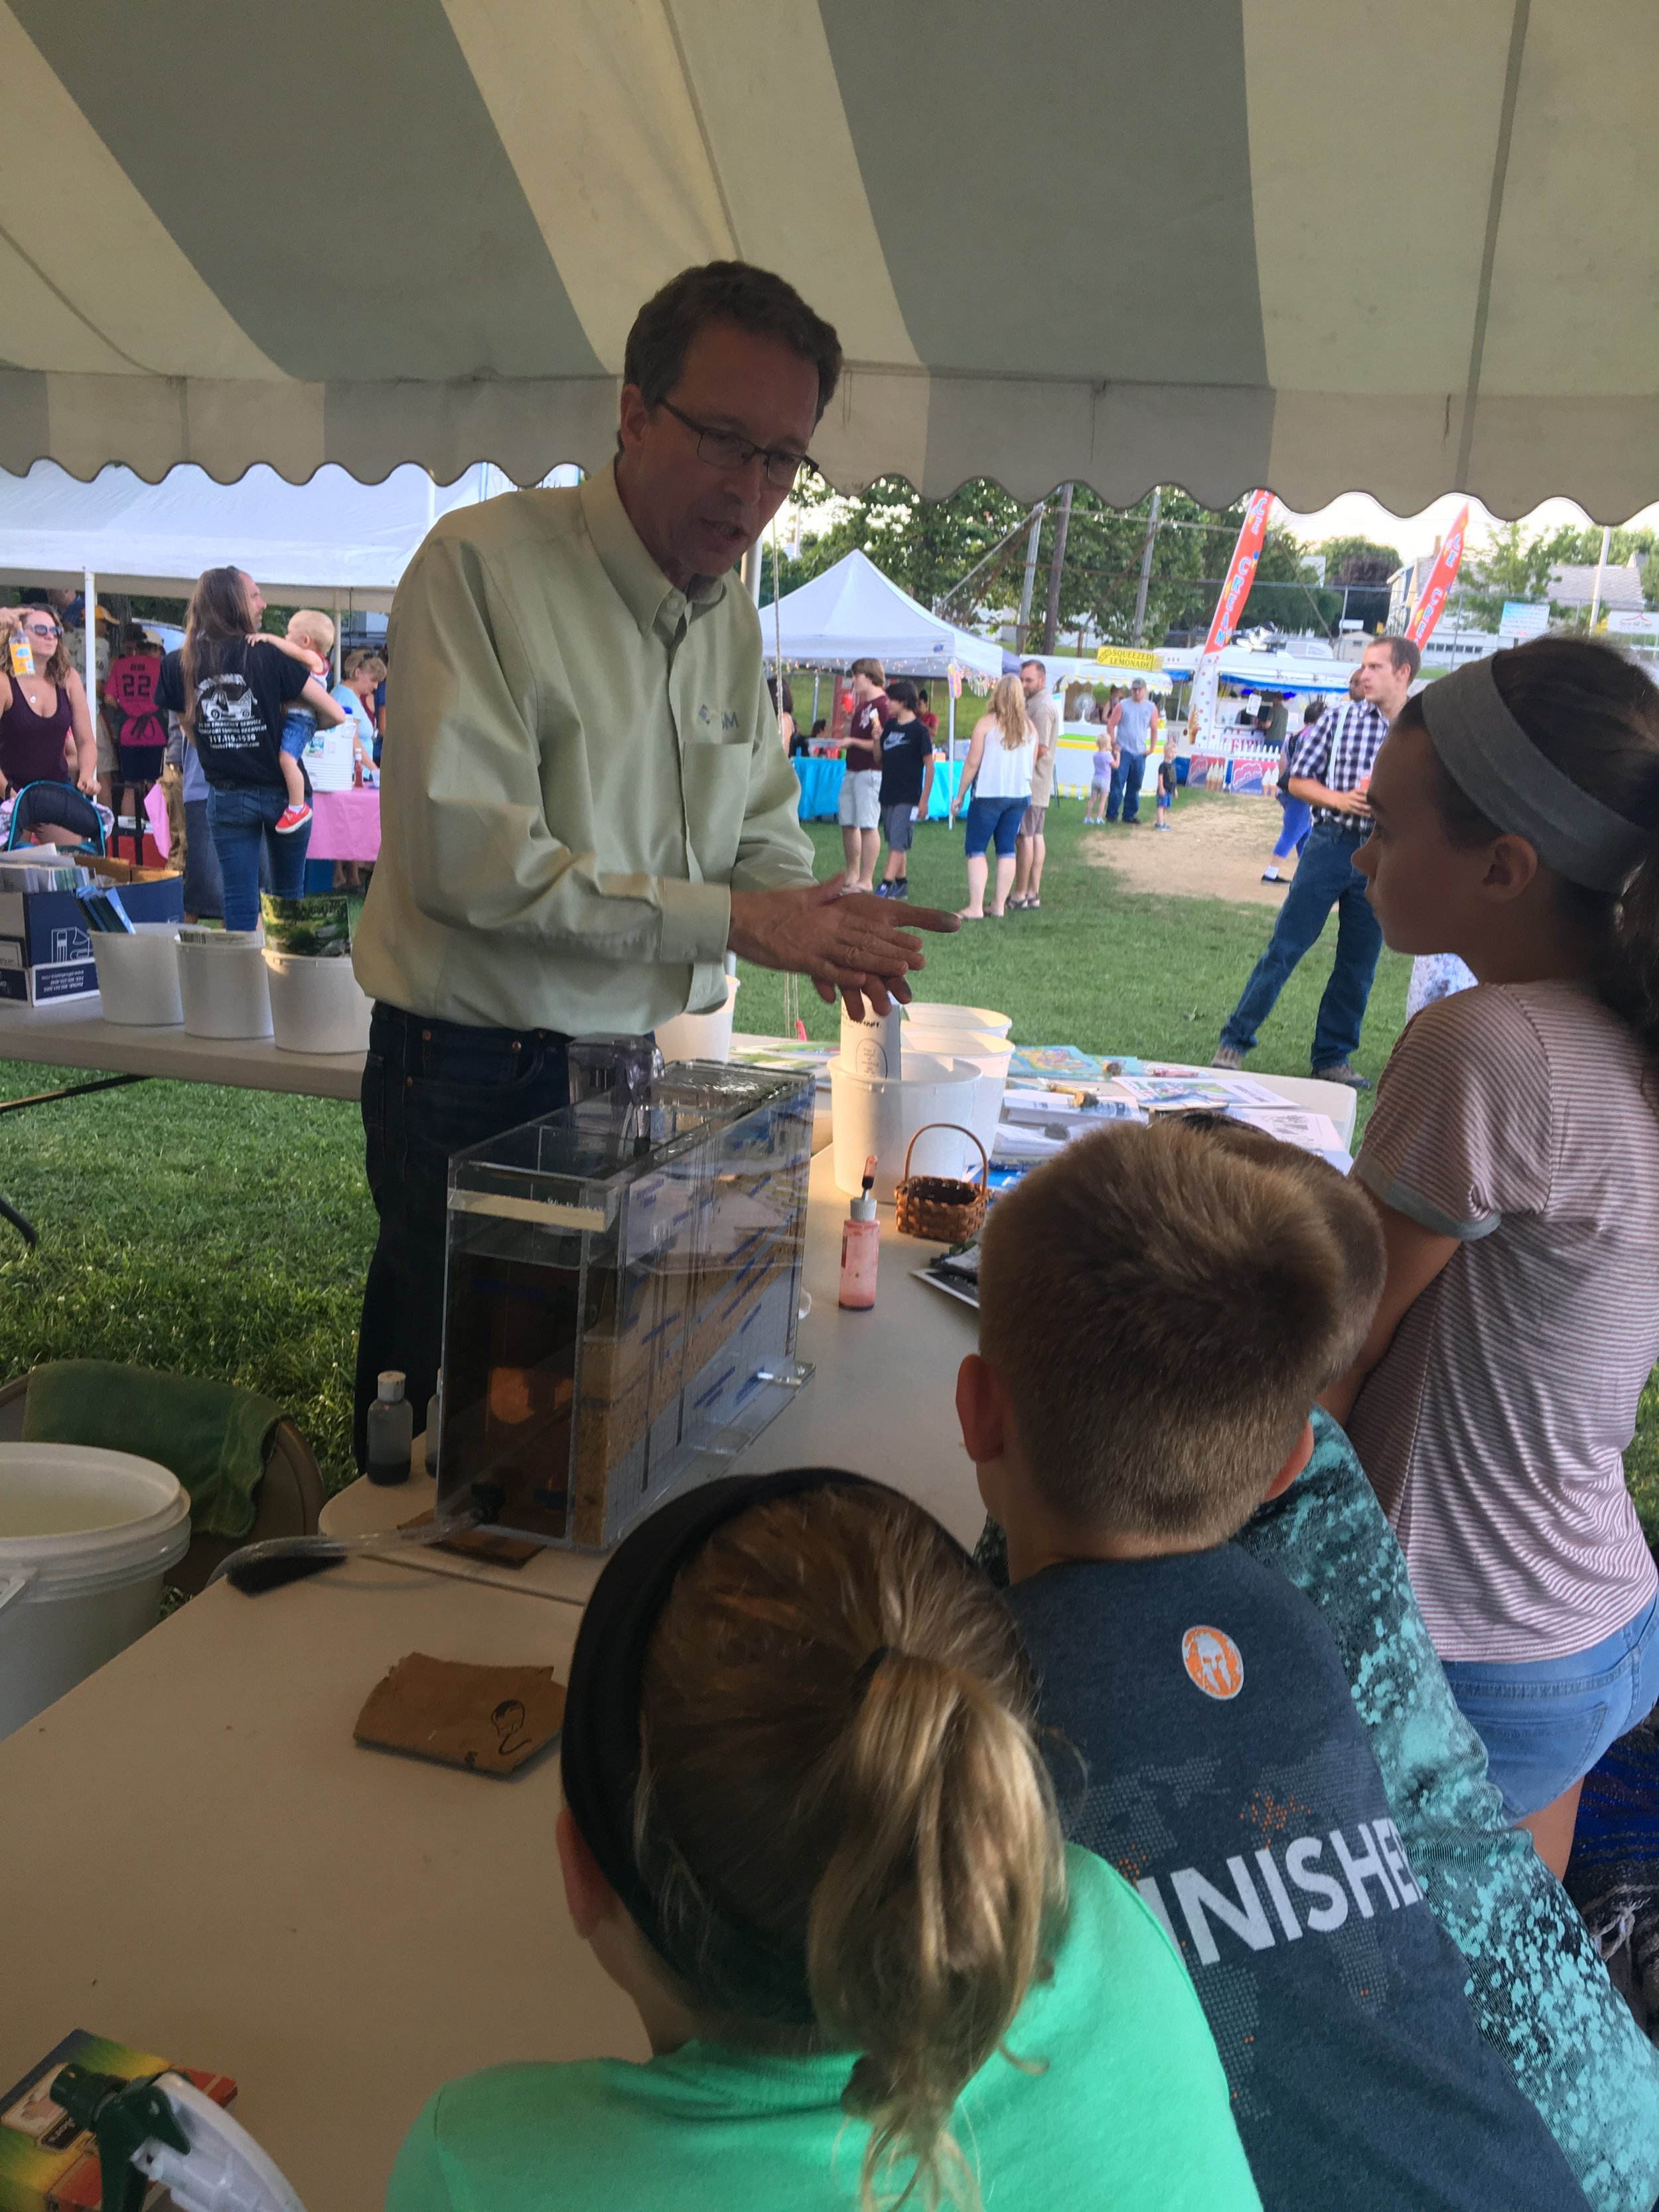 Darrell Belz demonstrates the groundwater model at Terre Hill Days